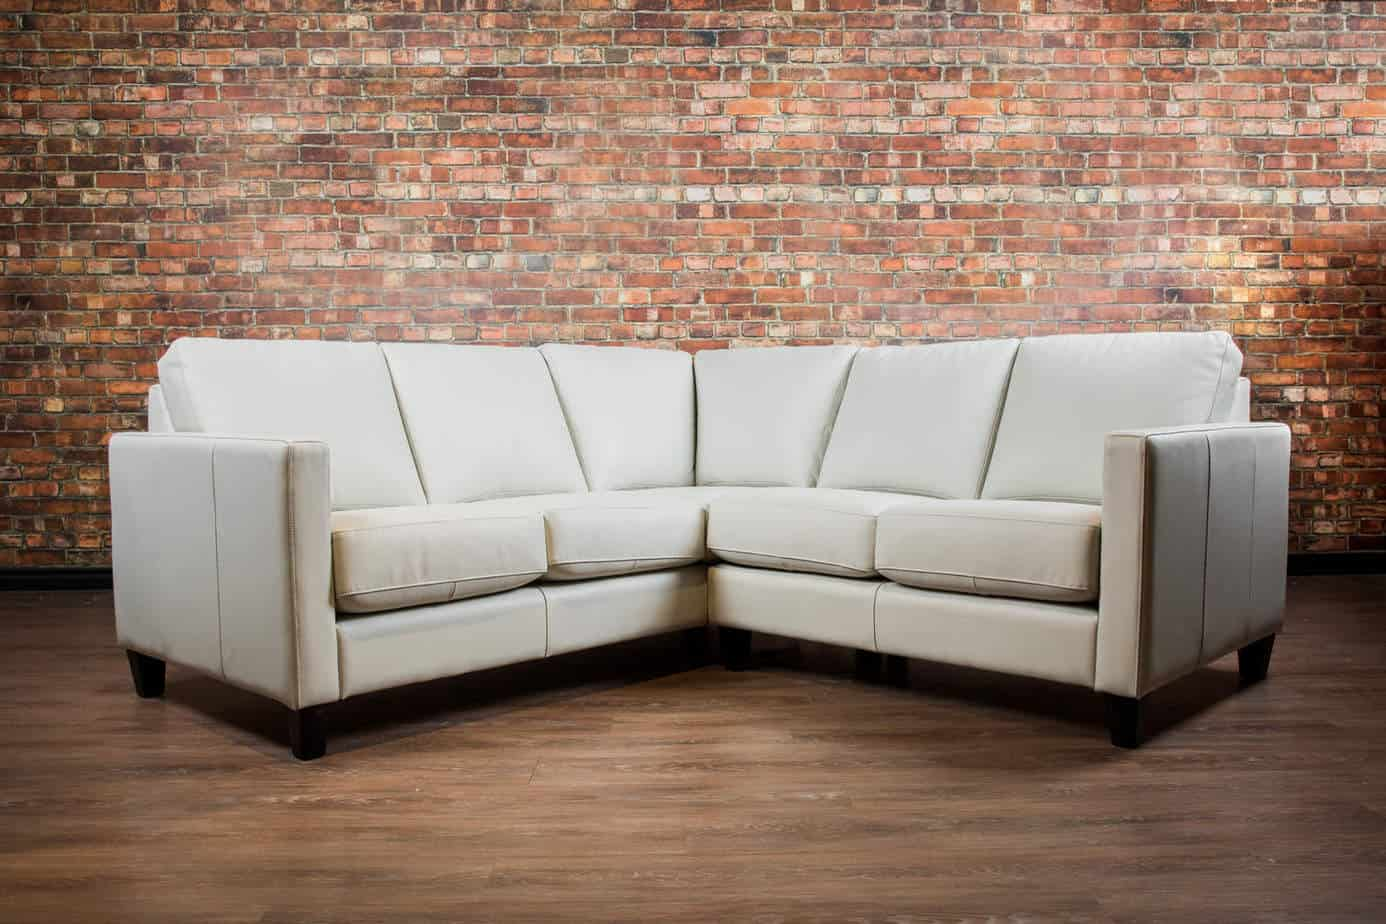 The Condo Elite Leather Sectional